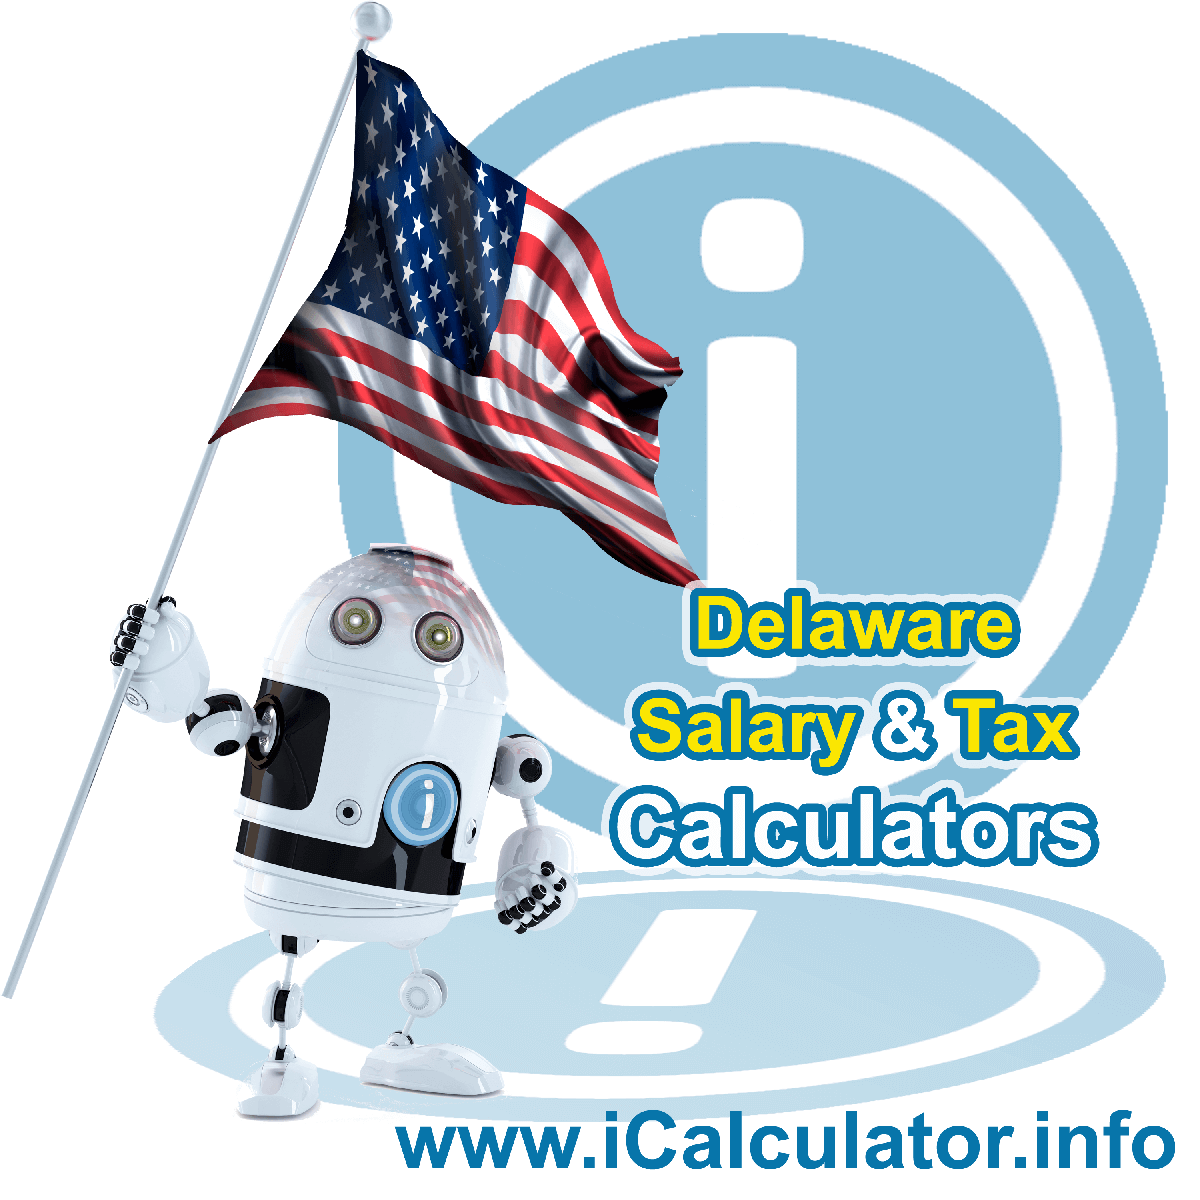 Delaware Salary Calculator 2021 | iCalculator™ | The Delaware Salary Calculator allows you to quickly calculate your salary after tax including Delaware State Tax, Federal State Tax, Medicare Deductions, Social Security, Capital Gains and other income tax and salary deductions complete with supporting Delaware state tax tables